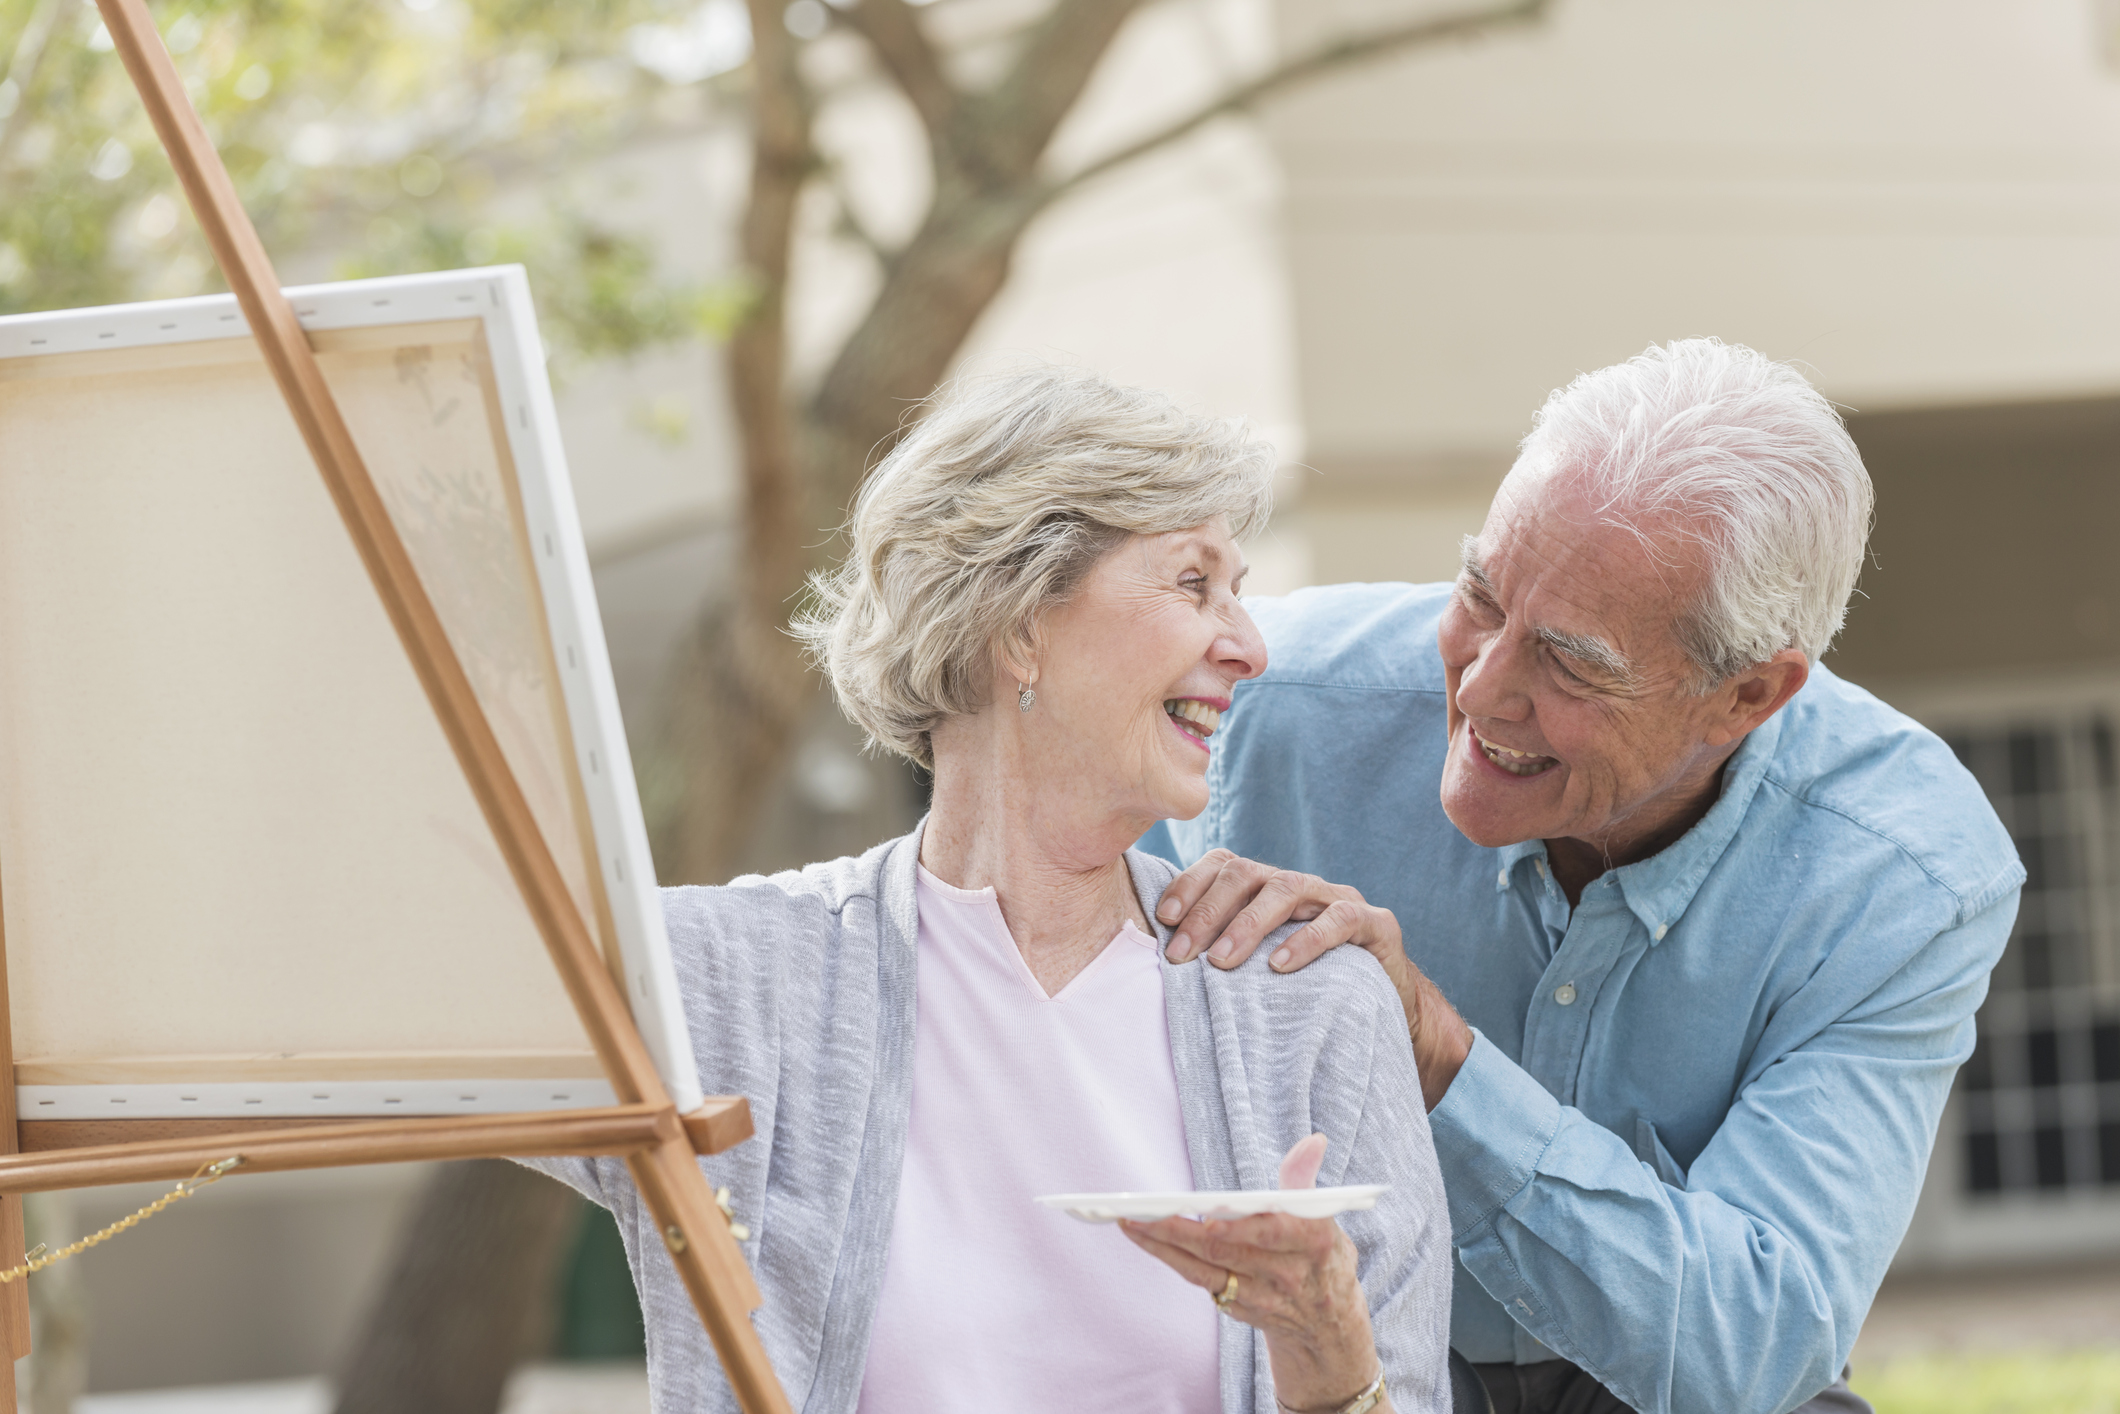 A senior woman sitting outdoors at an easel, painting a picture on canvas. She is turning her head to talk with her husband who is standing behind her with his hand on her shoulder. They are smiling.